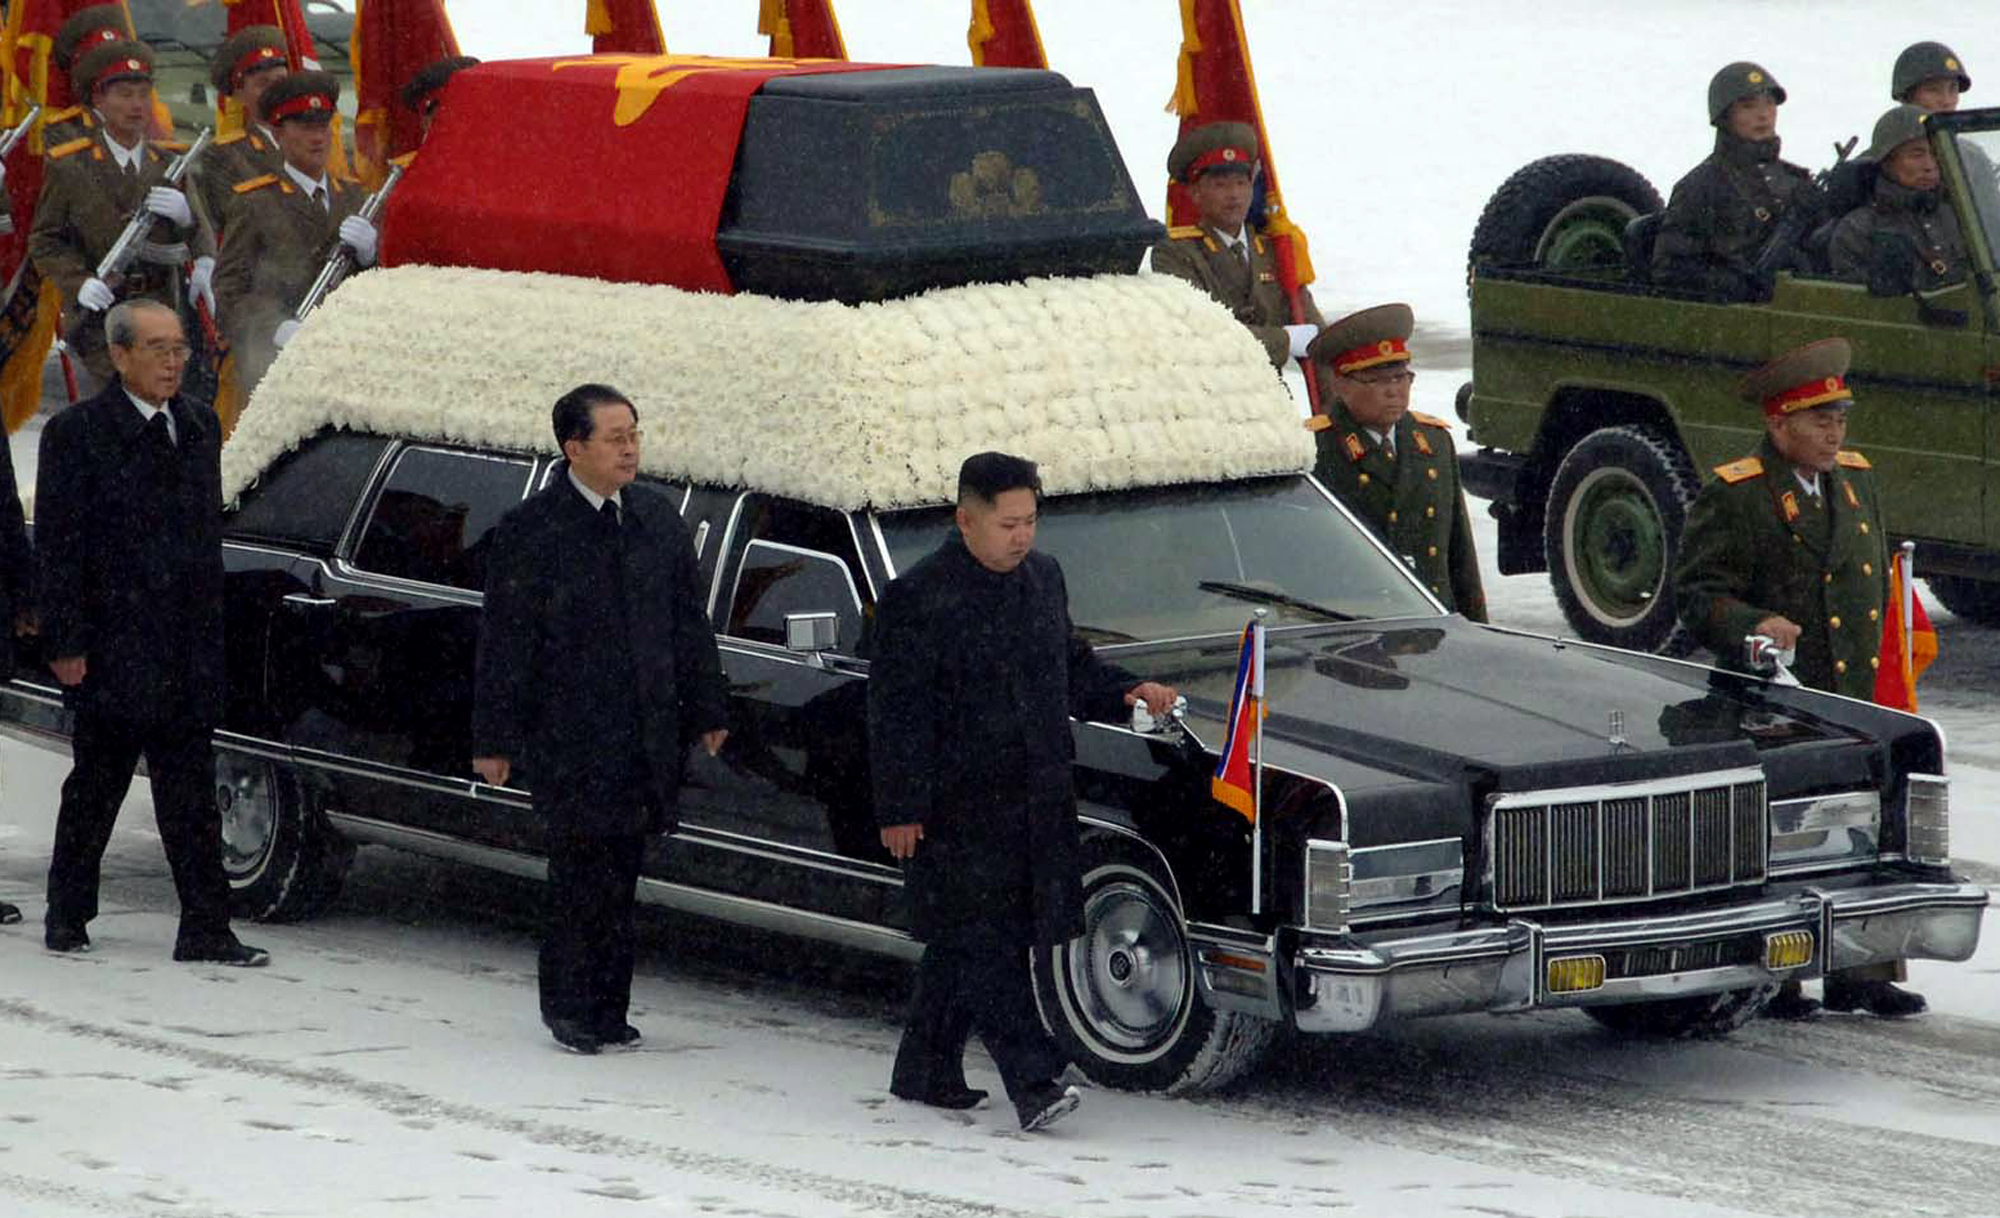 In this Wednesday, Dec. 28, 2011 photo released by the Korean Central News Agency and distributed in Tokyo, Dec. 29, 2011 by the Korea News Service, North Korea's next leader, Kim Jong Un, front right, walks beside the hearse carrying the body of his late father and North Korean leader Kim Jong Il during the funeral procession in Pyongyang, North Korea. Behind Kim Jong Un, in order are Jang Song Thaek, Kim Jong Il's brother-in-law and vice chairman of the National Defense Commission and Kim Ki Nam.  At far right is Ri Yong Ho, the Vice Marshal of the Korean People's Army. Behind him is People's Armed Forces Minister Kim Yong Chun.   (AP Photo/Korean Central News Agency via Korea News Service) JAPAN OUT UNTIL 14 DAYS AFTER THE DAY OF TRANSMISSION